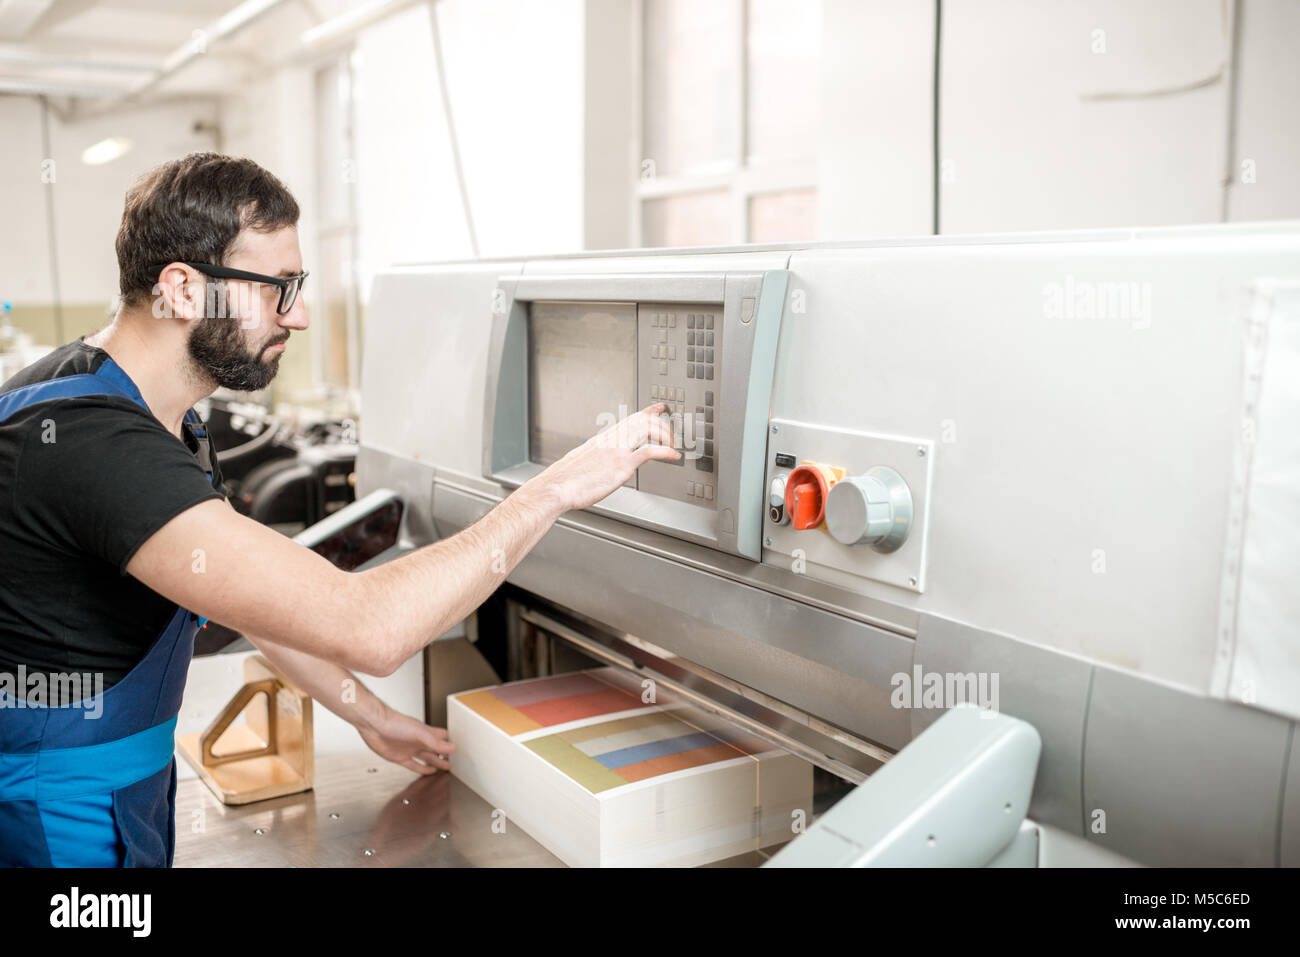 Guillotine Man Cutting Stockfotos & Guillotine Man Cutting Bilder ...